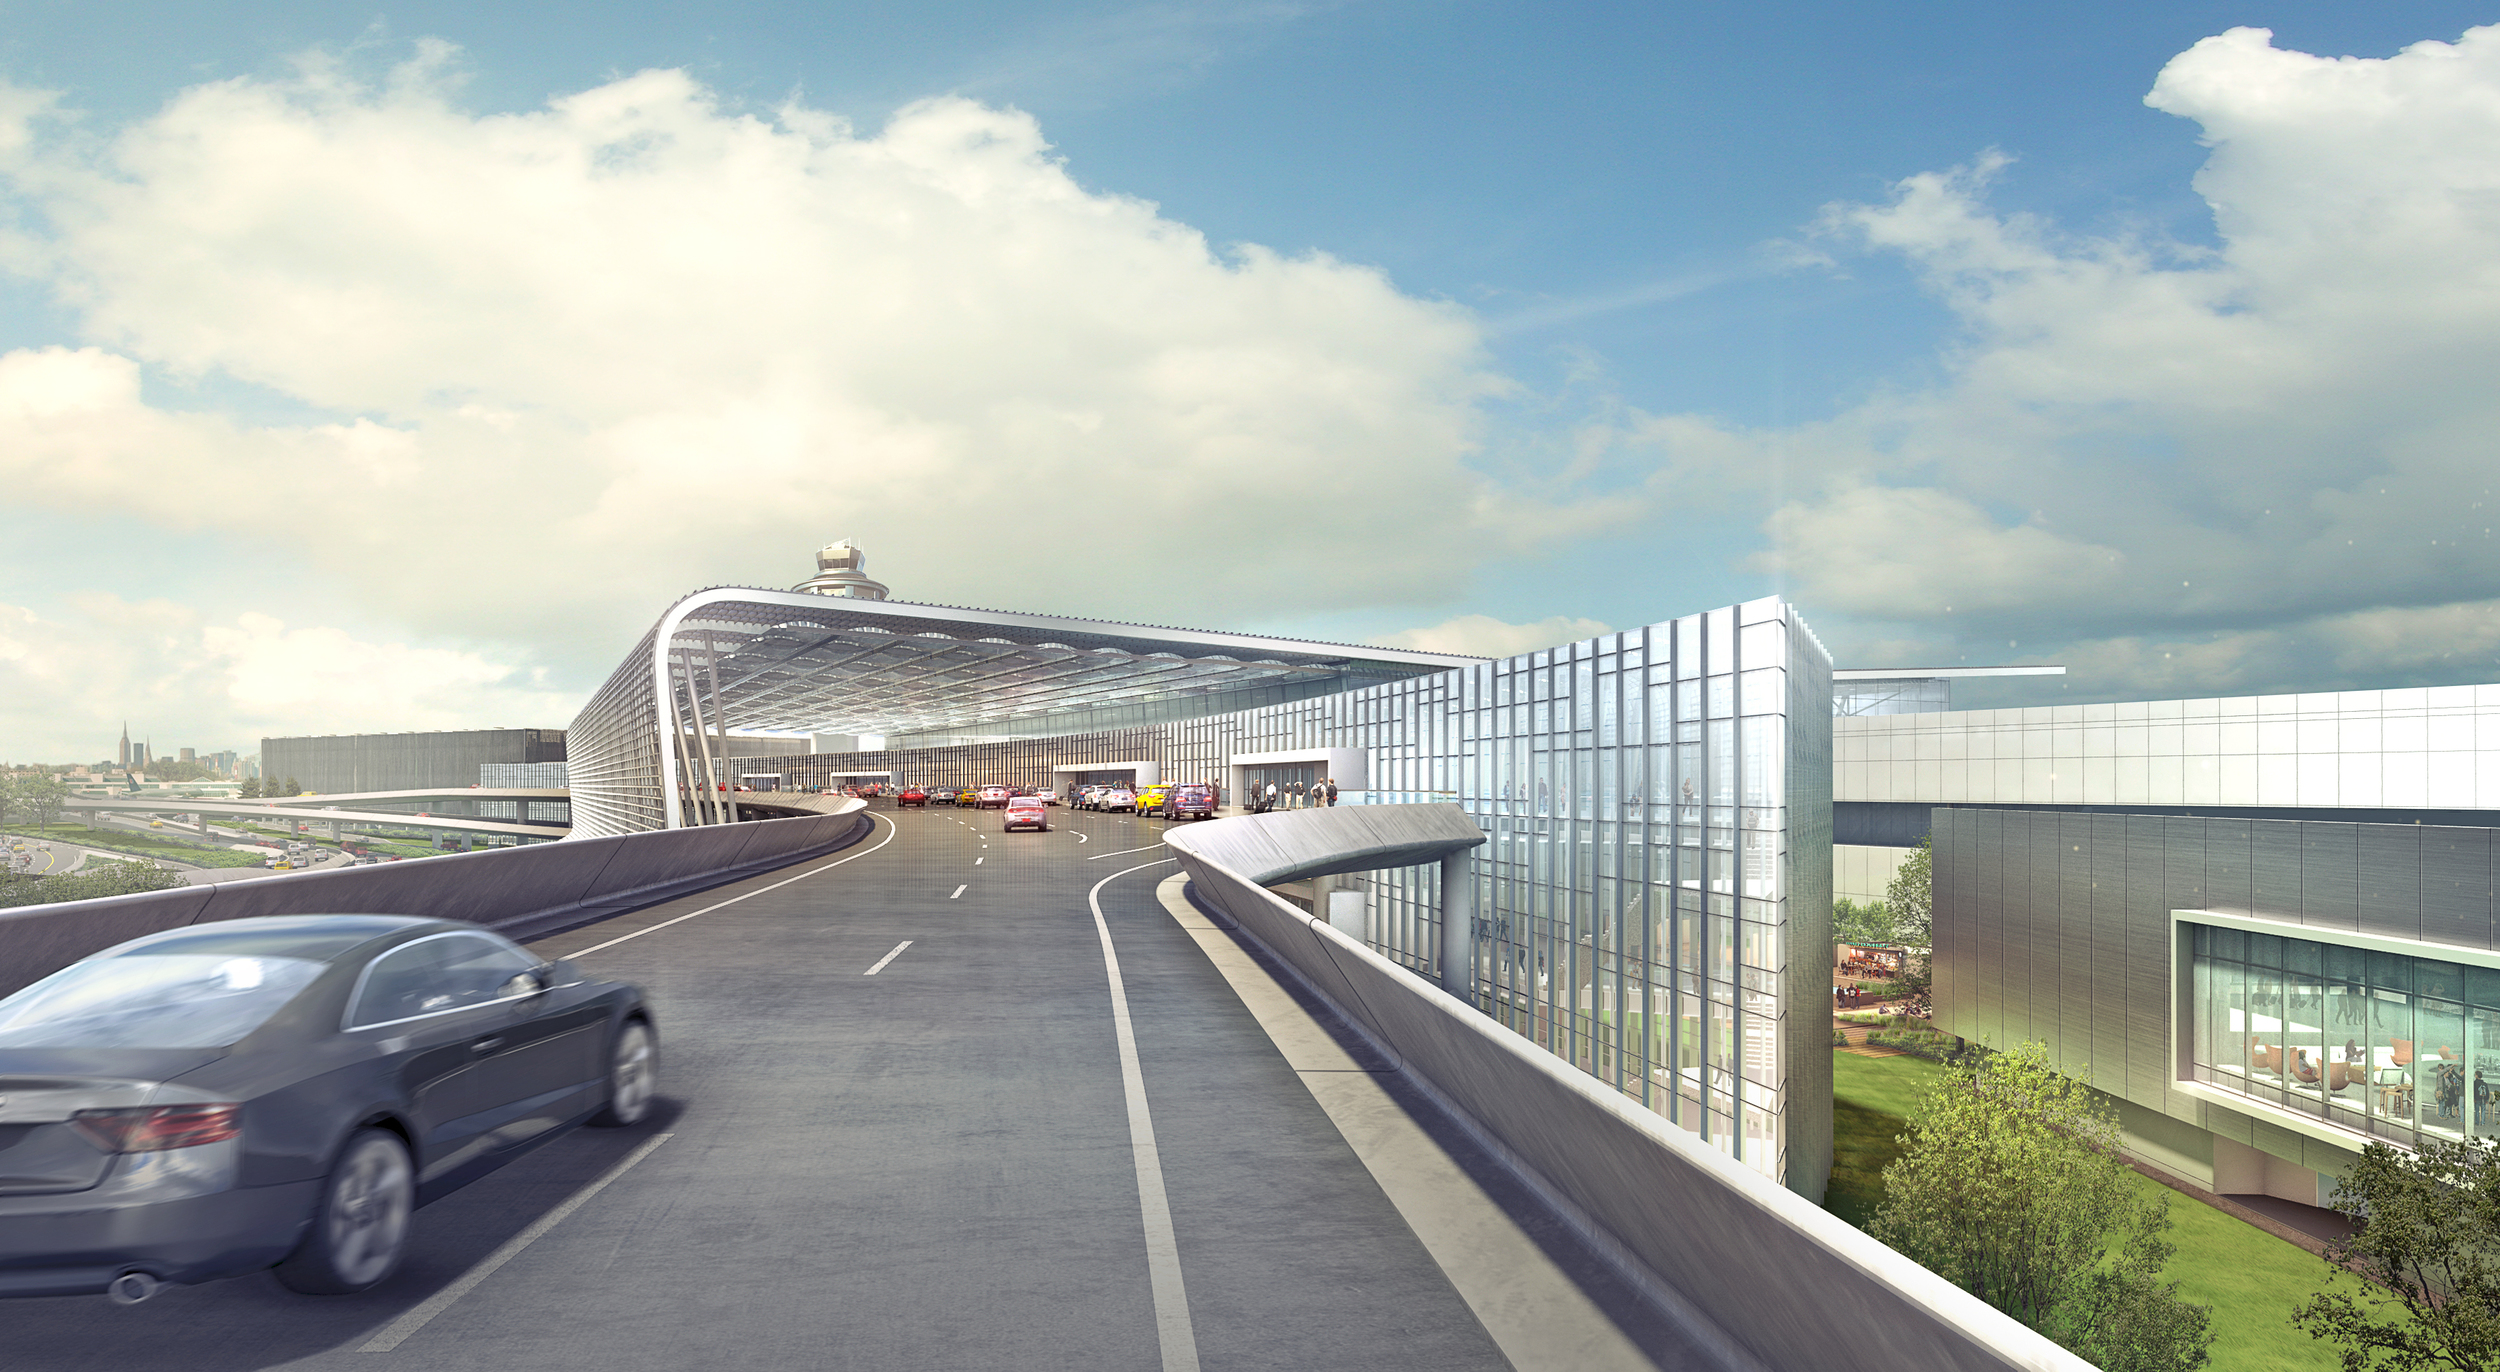 LaGuardia AIRPORT CONCEPT   New York, NY    Image courtesy of Gensler